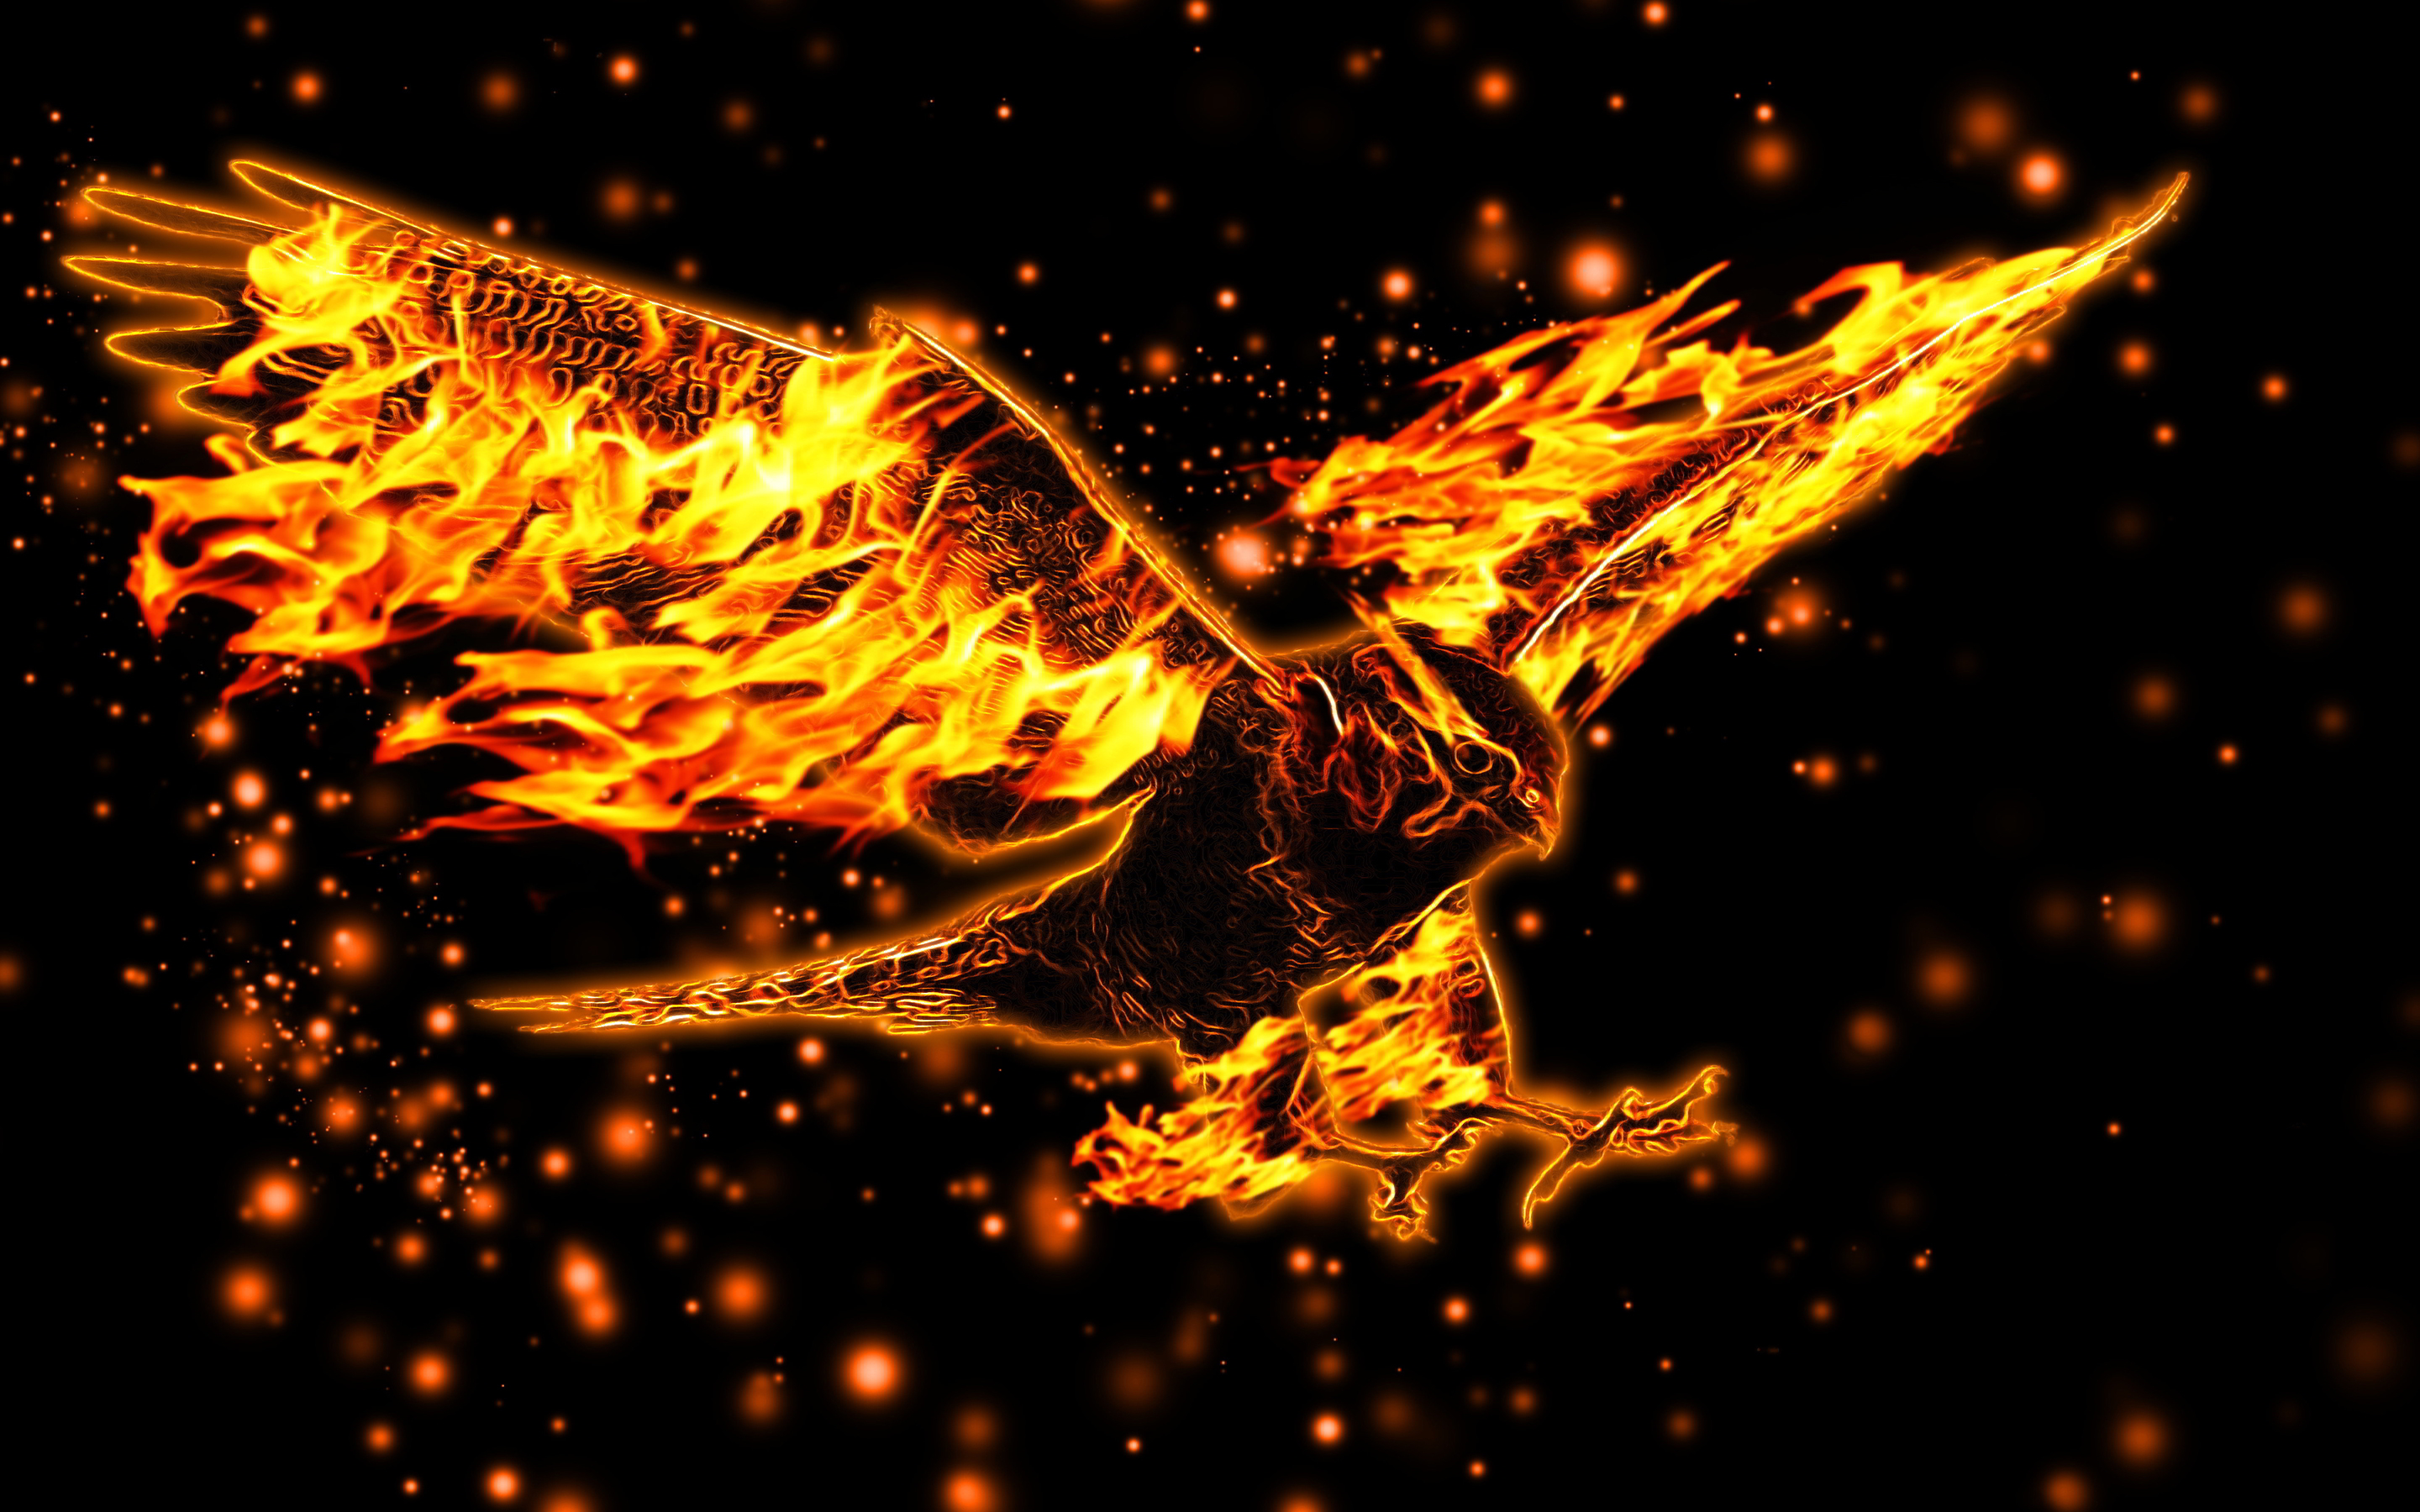 hd wallpapers desktop fire - photo #34